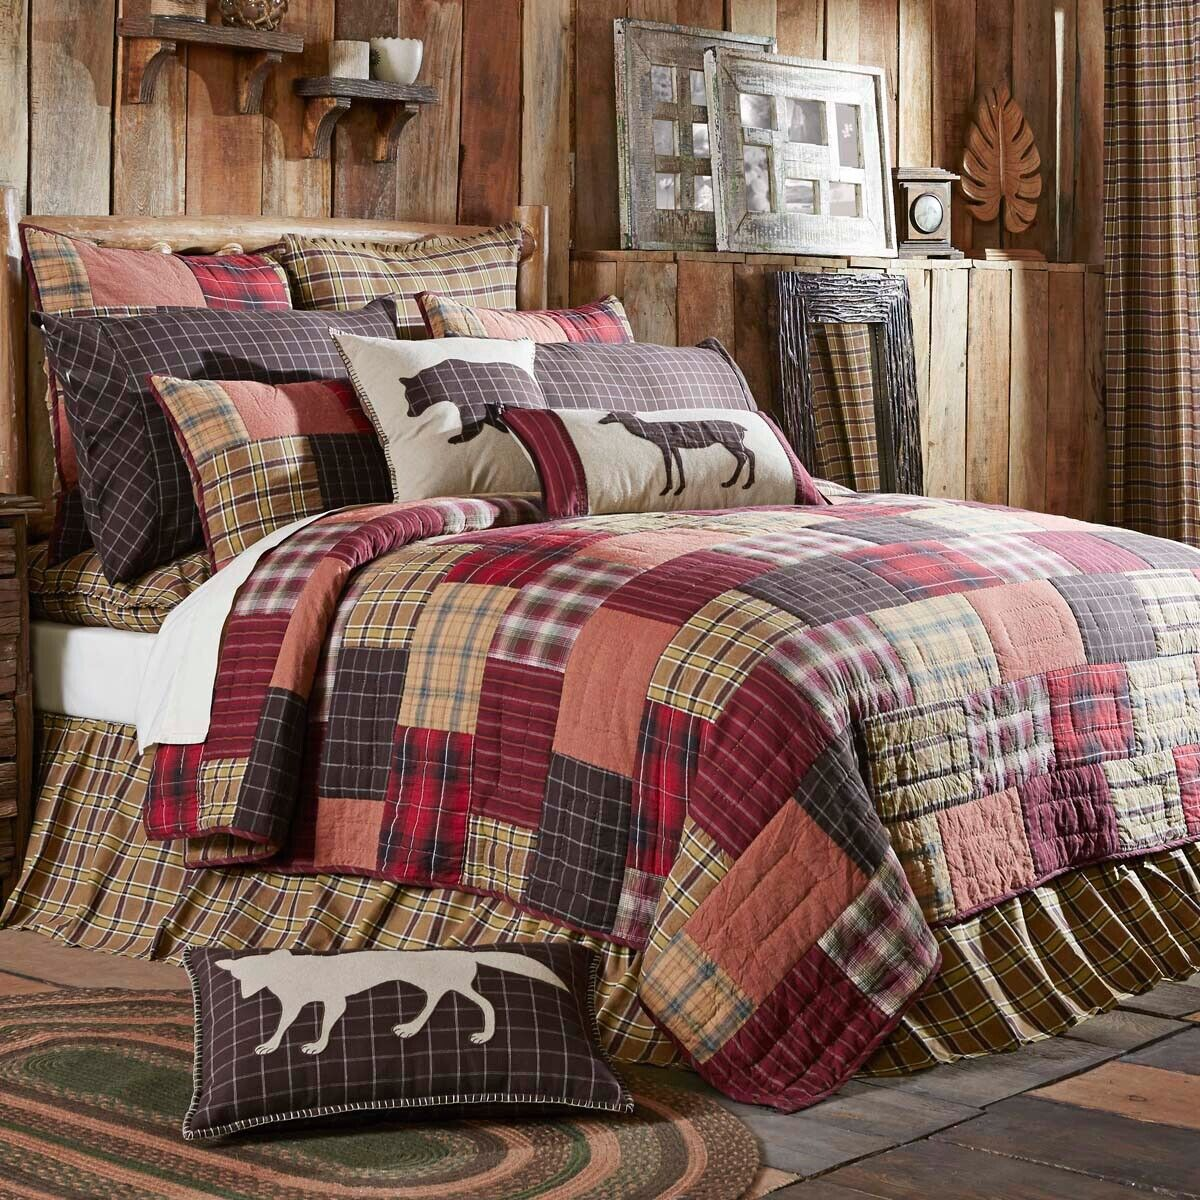 Your Choice Size /& Accessories Country Farmhouse Plaid Bedding VHC Wyatt Quilt